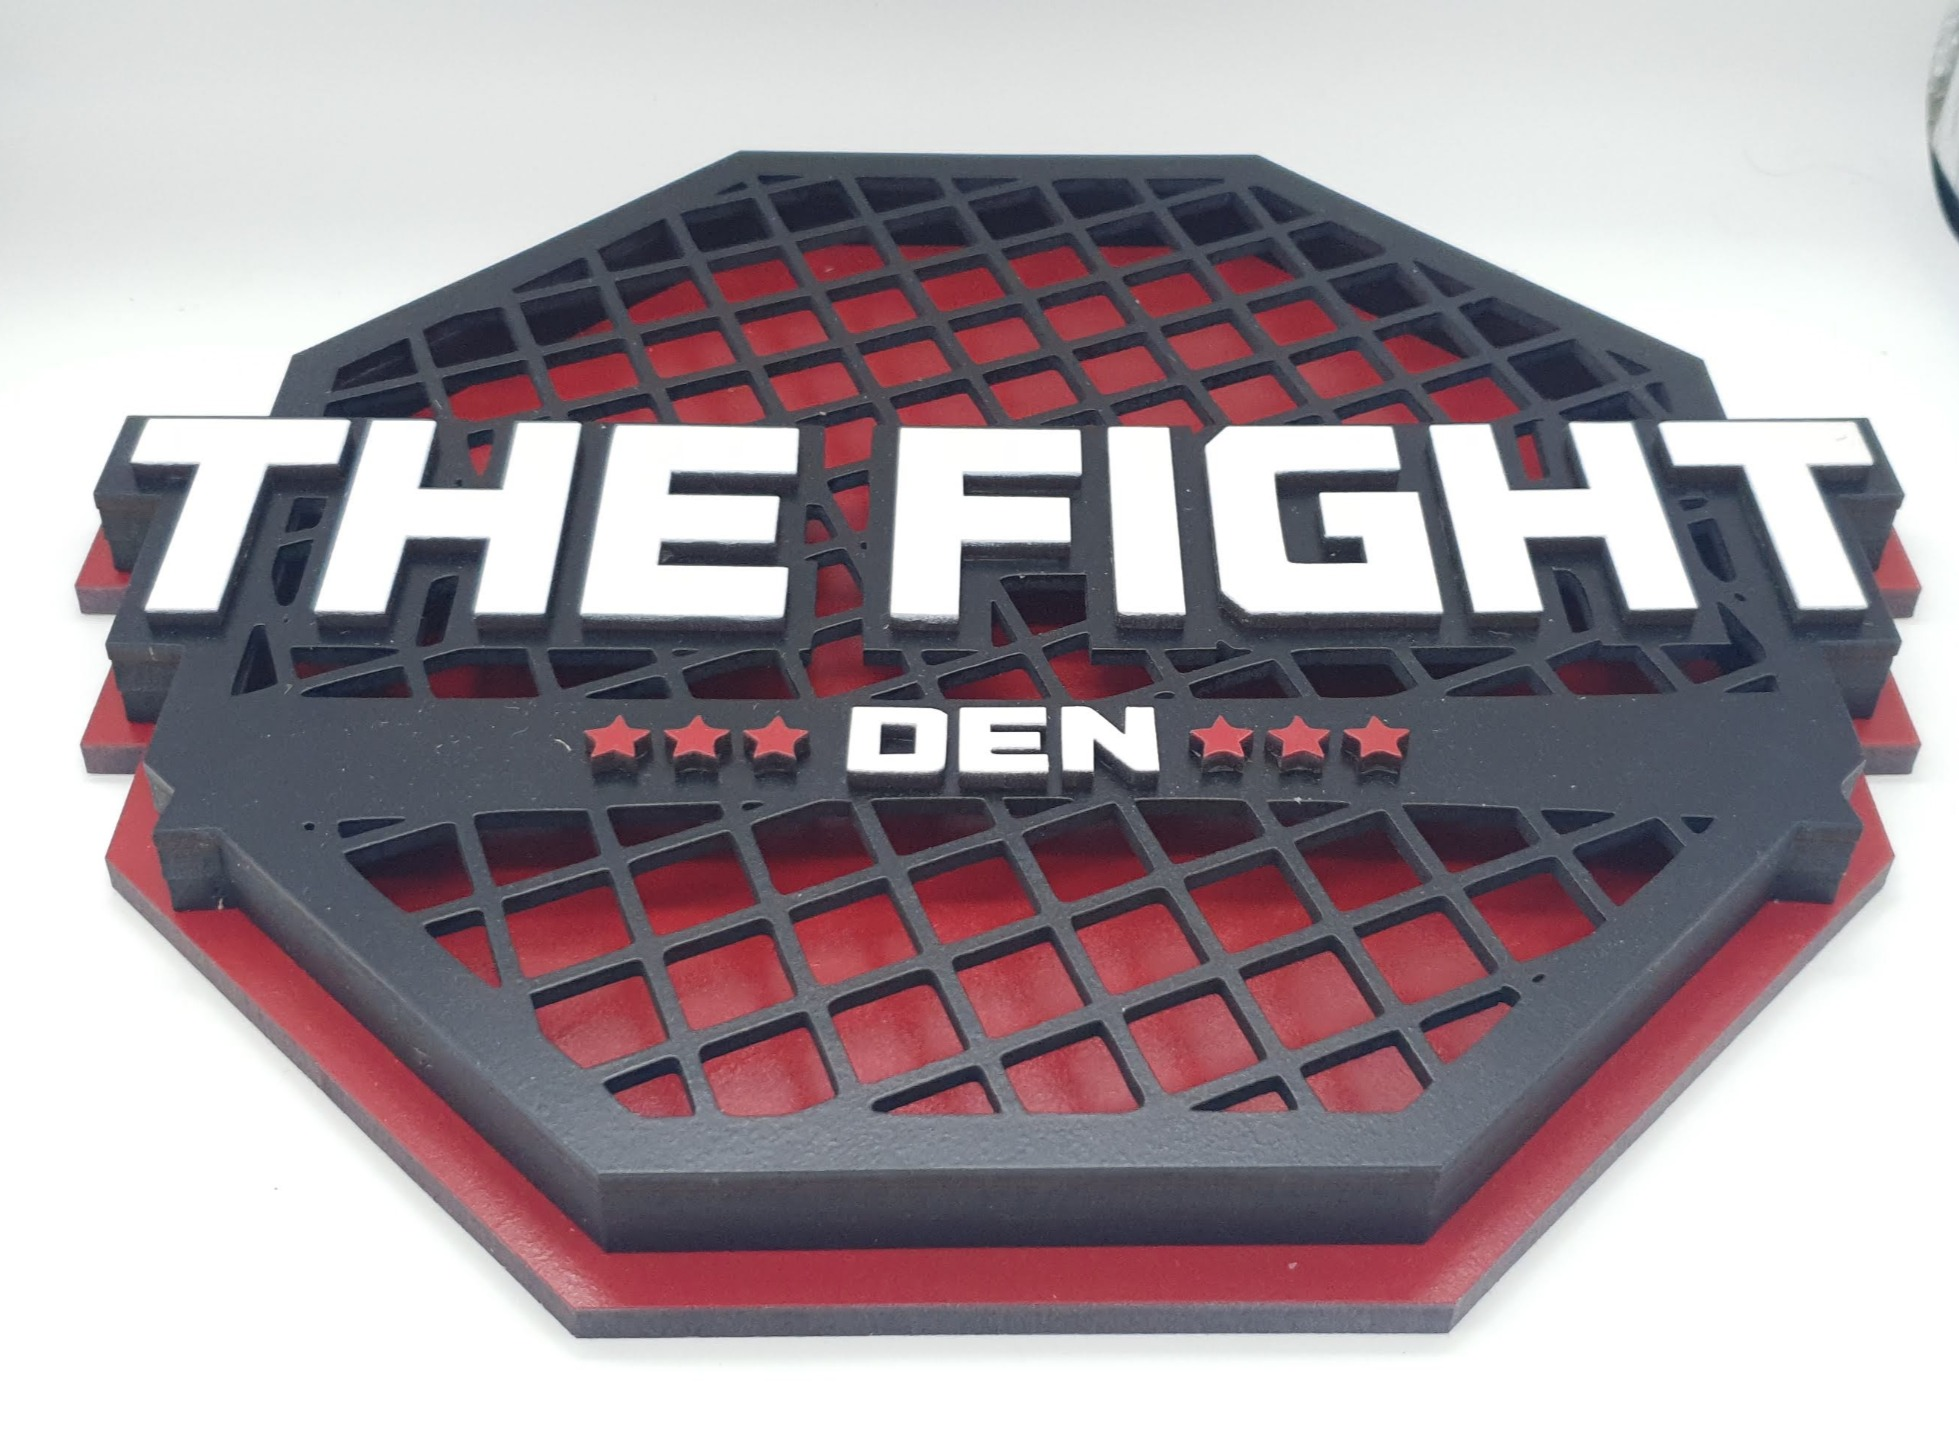 The Fight Den logo